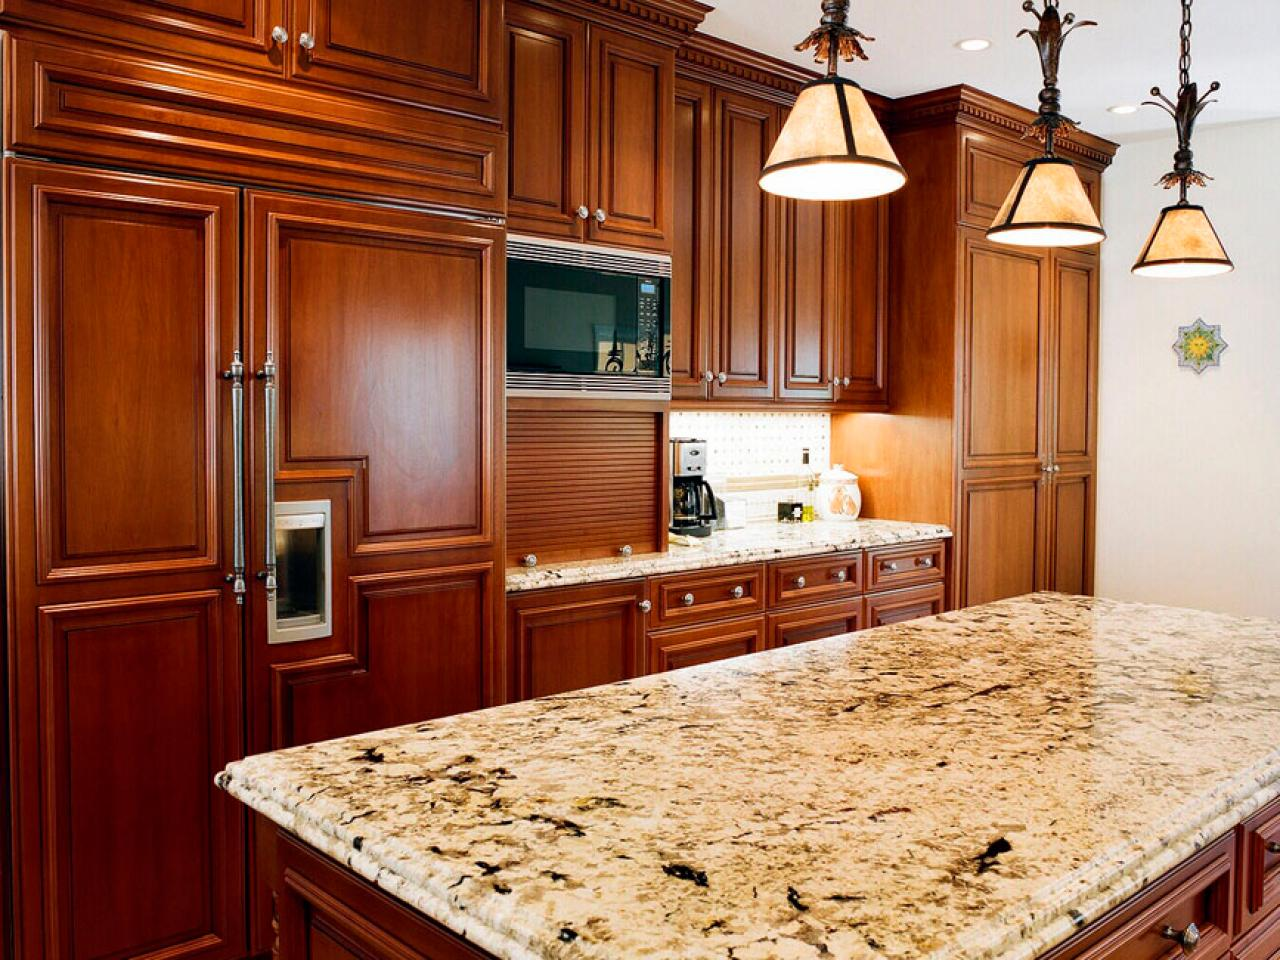 Modular high end kitchen cabinets cabinets for country-style kitchens agtpnva